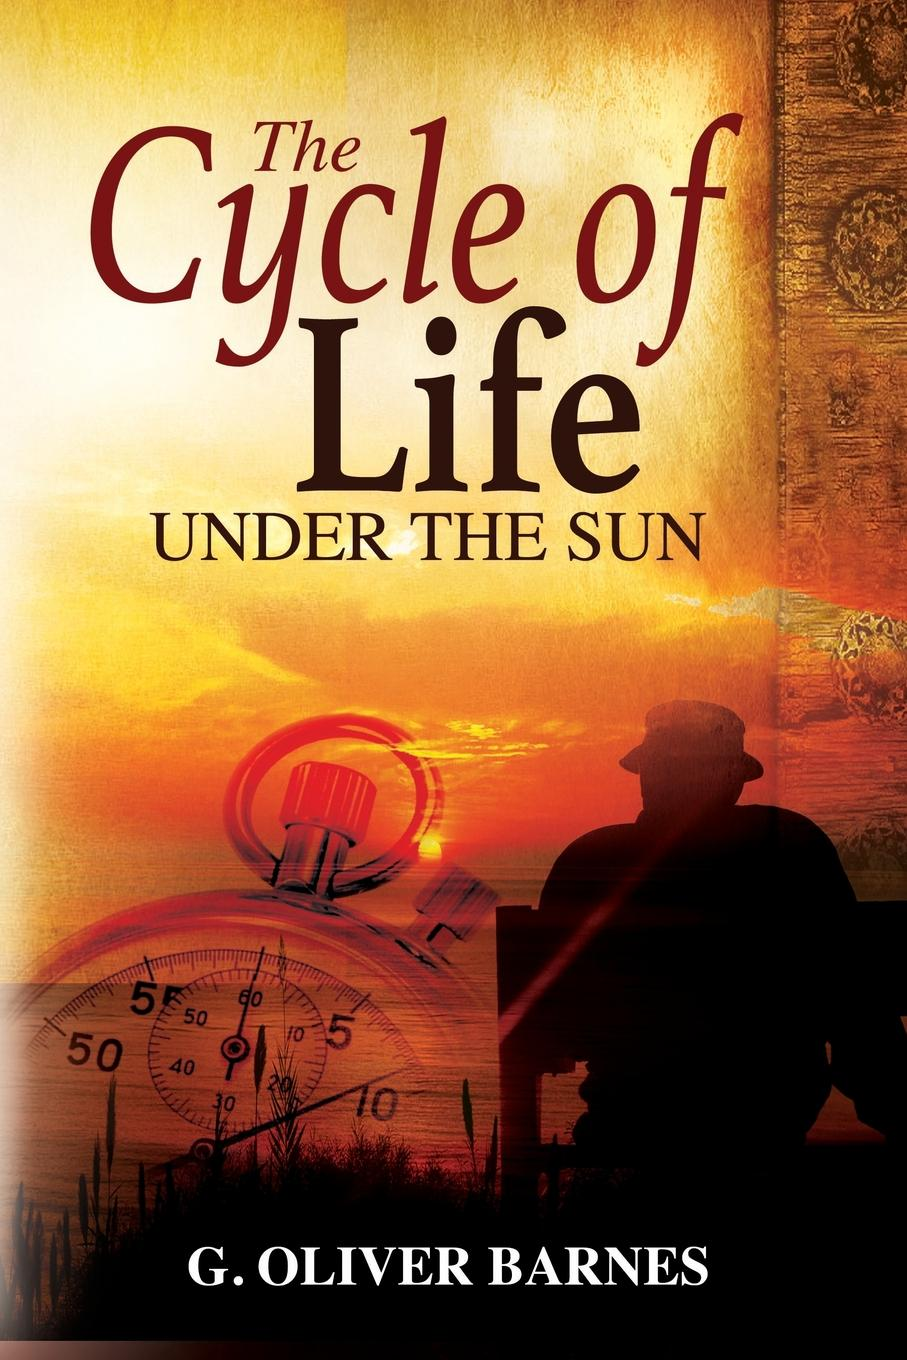 G. Oliver Barnes The Cycle of Life Under the Sun free shipping kayipht cm400ha1 24h can directly buy or contact the seller